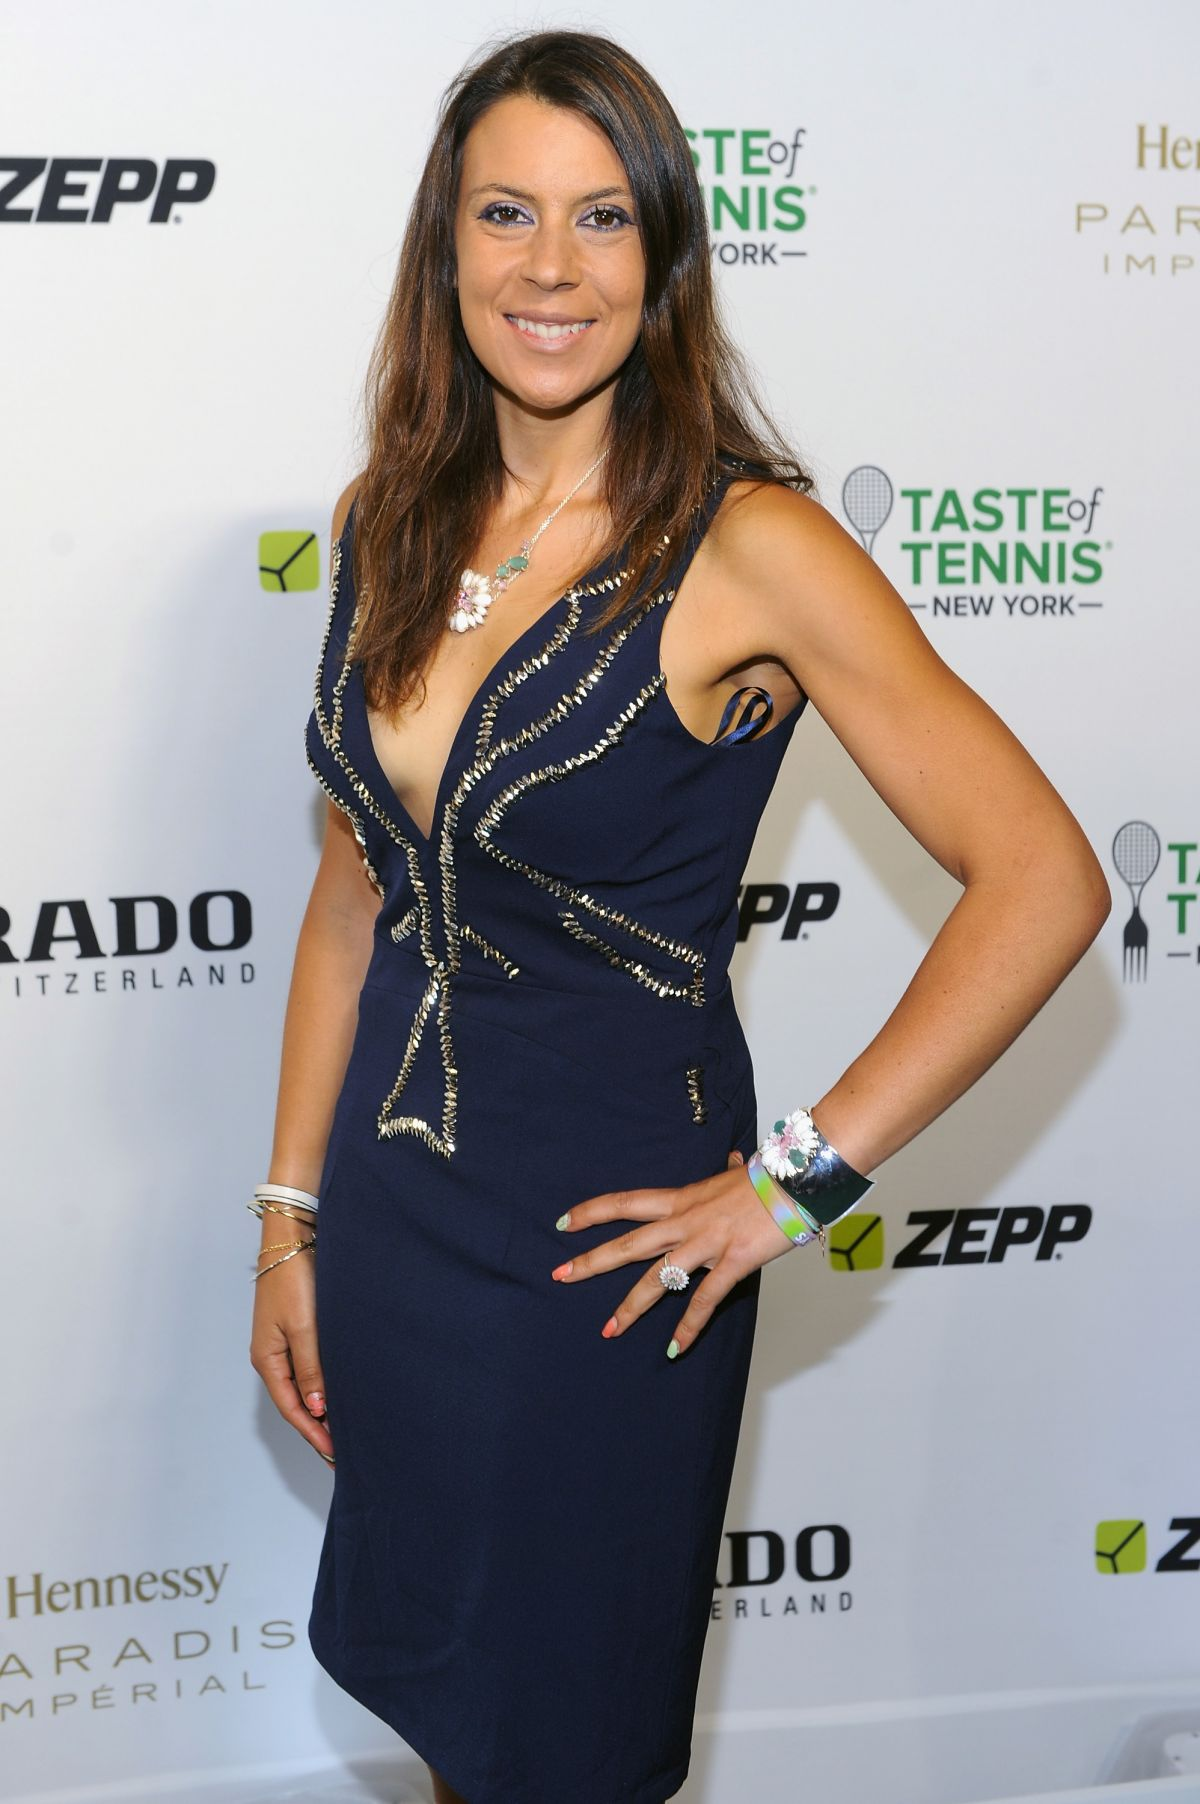 MARION BARTOLI at Taste of Tennis Gala in New York